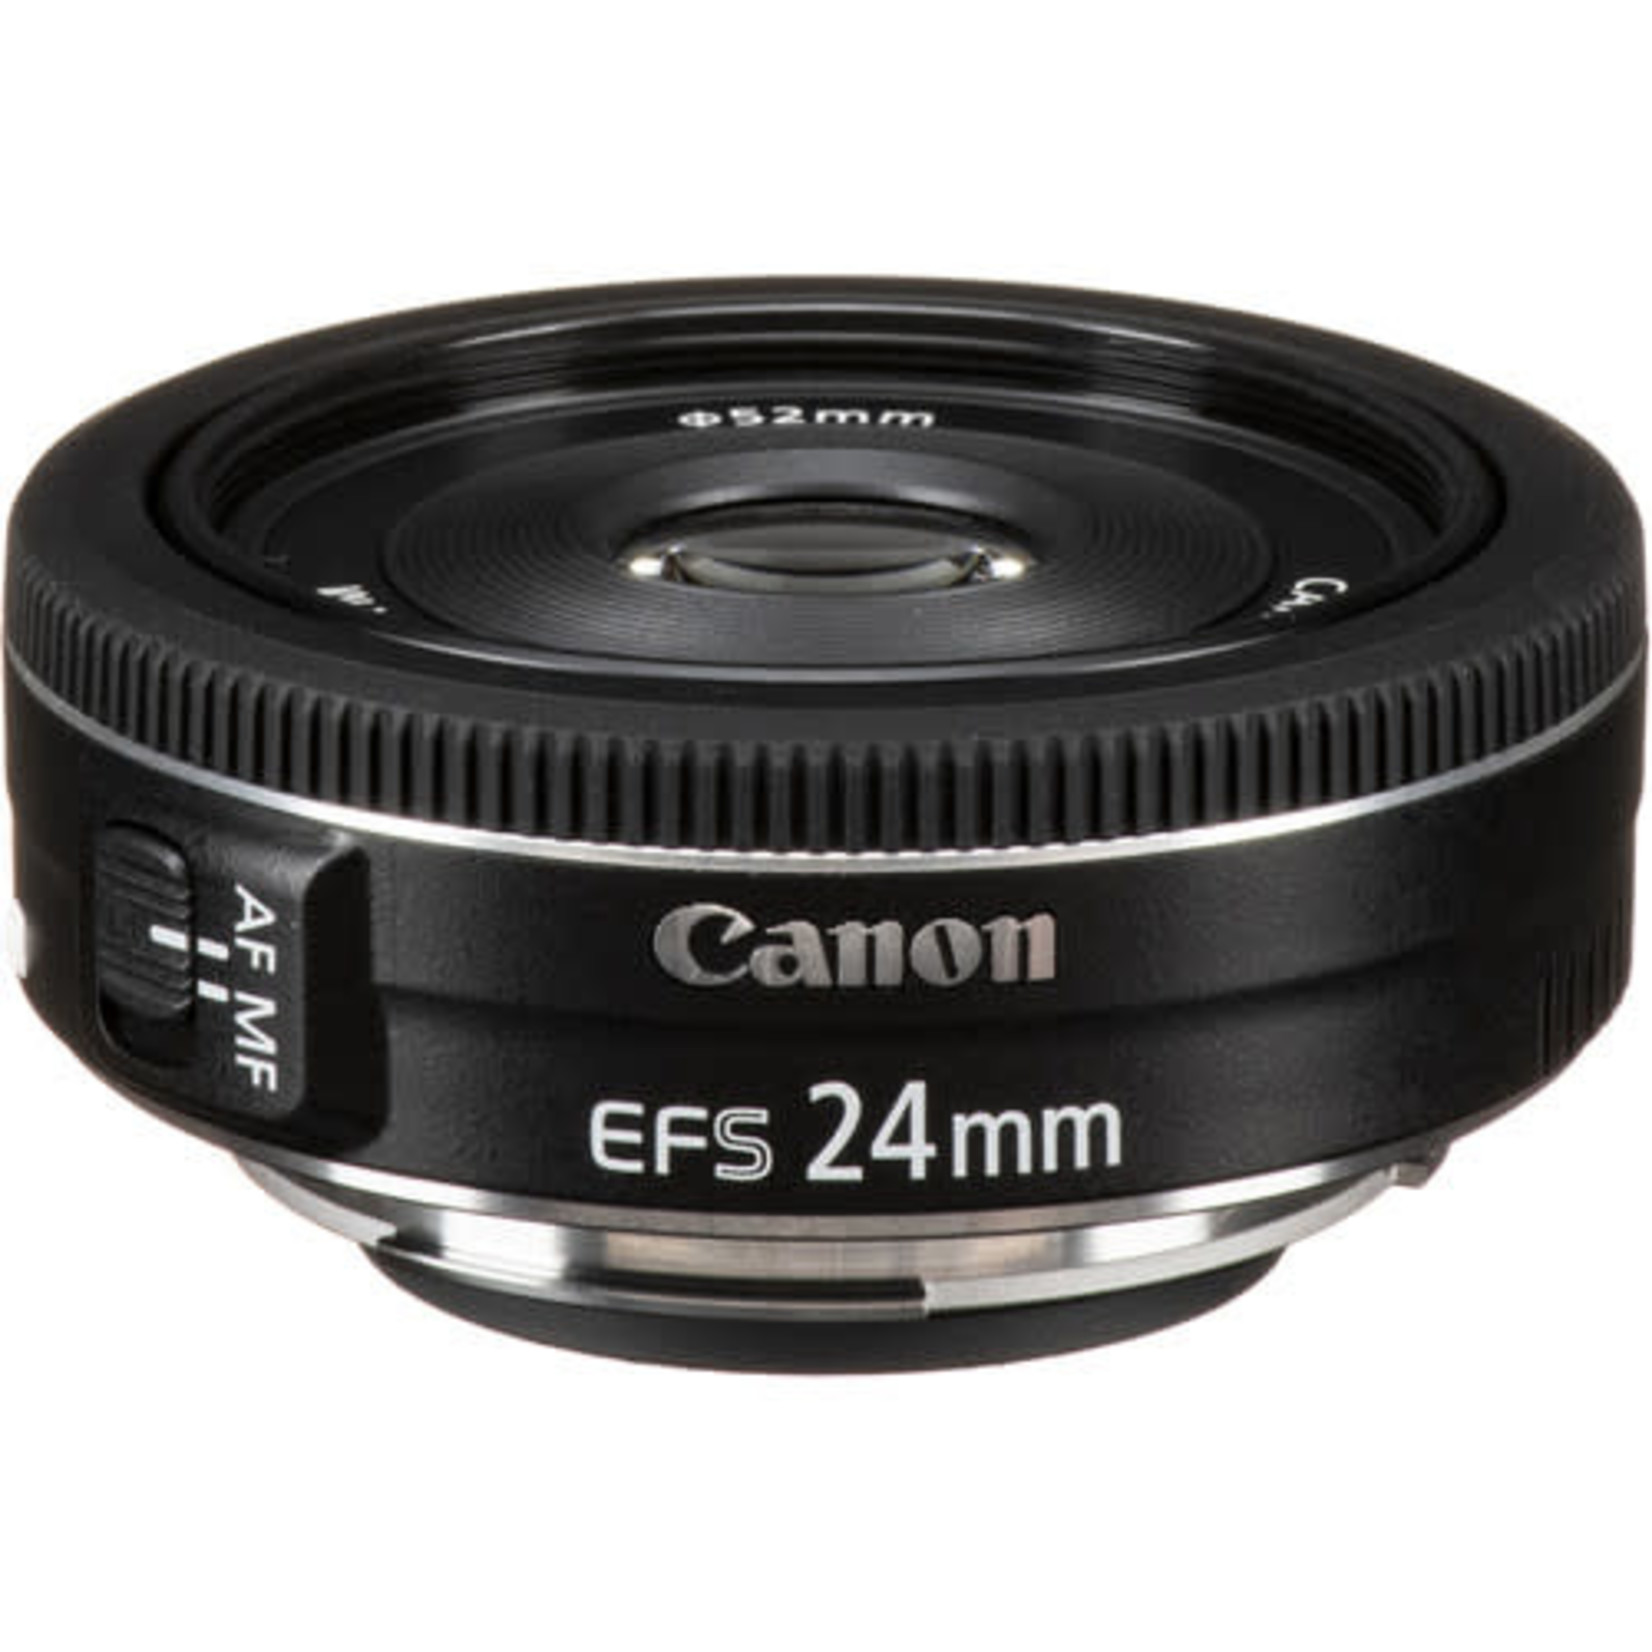 Canon Canon EF-S 24mm f/2.8 STM Lens